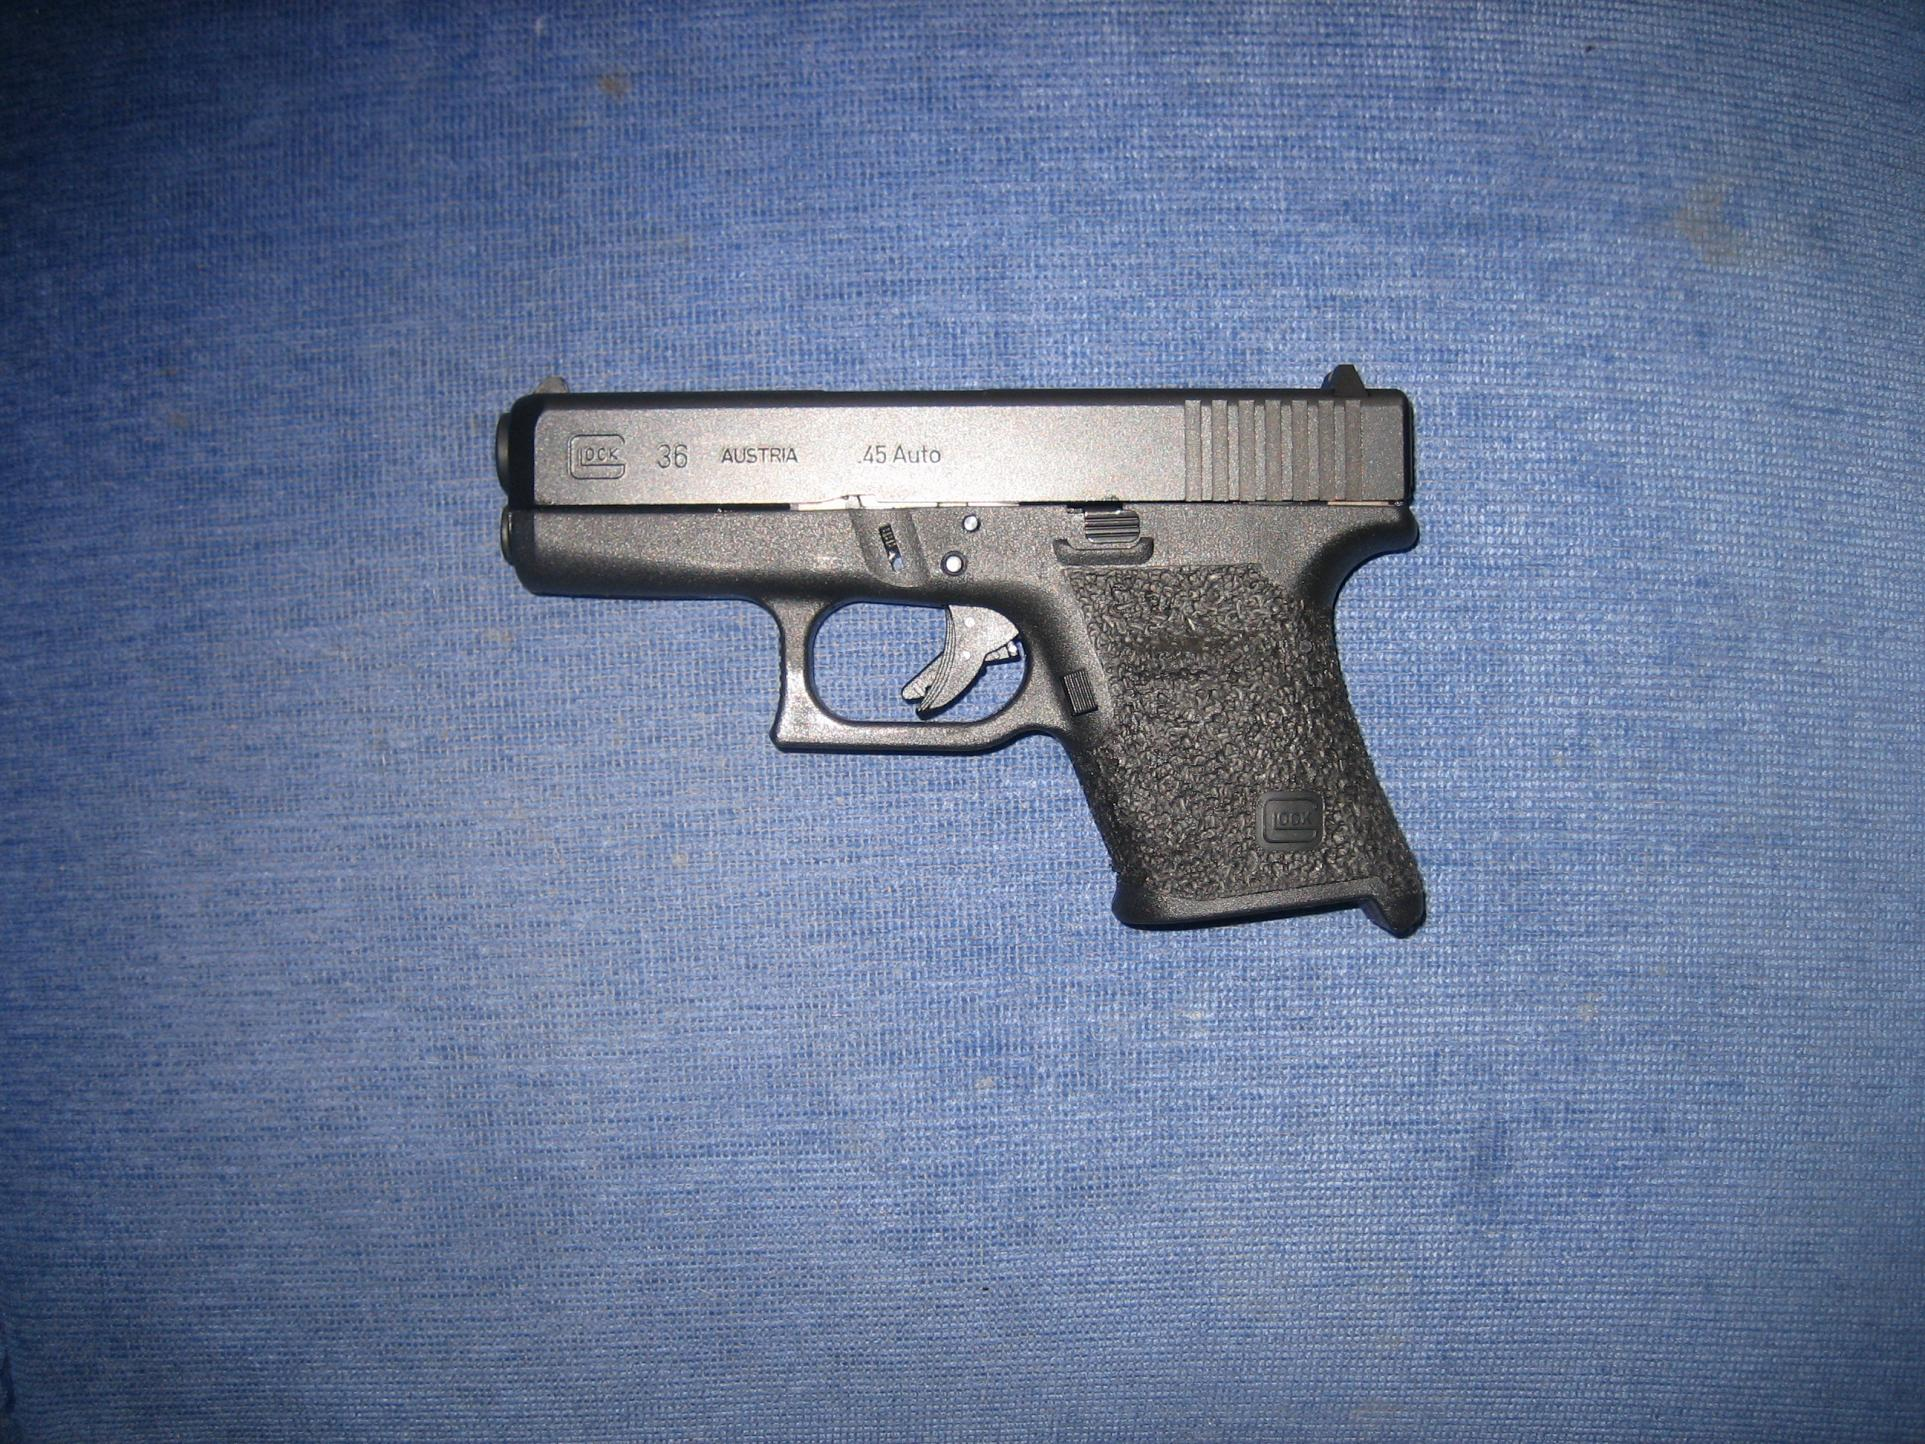 Glock G36 w/ grip reduction-grip-reduction.jpg